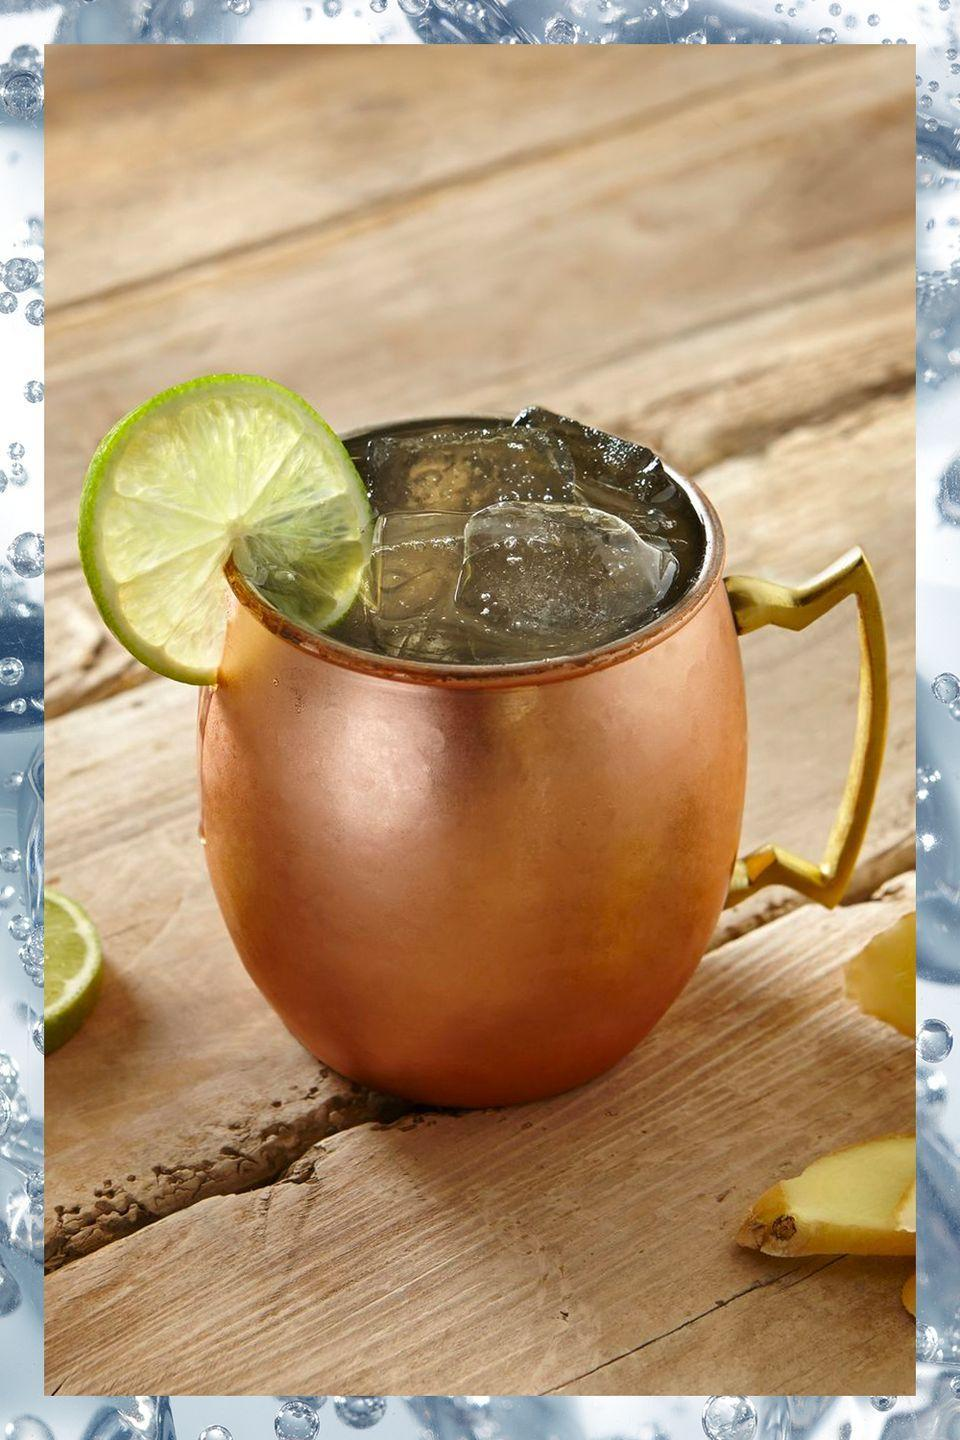 """<p>Popular for good reason, the Moscow Mule is one of the most refreshing things to sip on a hot summer day. Its suggested vessel, a copper mug, also just looks sharp.</p><p>- 2 oz vodka <br>- 4 to 6 oz ginger beer<br>- .5 oz lime juice</p><p><em>Squeeze lime juice into a <a href=""""https://www.amazon.com/Original-100-Pure-Copper-Mug/dp/B00R0BCR4E/?tag=syn-yahoo-20&ascsubtag=%5Bartid%7C10067.g.13092298%5Bsrc%7Cyahoo-us"""" rel=""""nofollow noopener"""" target=""""_blank"""" data-ylk=""""slk:Moscow Mule mug"""" class=""""link rapid-noclick-resp"""">Moscow Mule mug</a>. Add two or three ice cubes, pour in the vodka, and fill with cold ginger beer. Stir and serve.</em></p><p><strong>More:</strong> <a href=""""http://www.townandcountrymag.com/leisure/drinks/g3077/vodka-cocktails/"""" rel=""""nofollow noopener"""" target=""""_blank"""" data-ylk=""""slk:Essential Vodka Cocktails"""" class=""""link rapid-noclick-resp"""">Essential Vodka Cocktails</a></p>"""